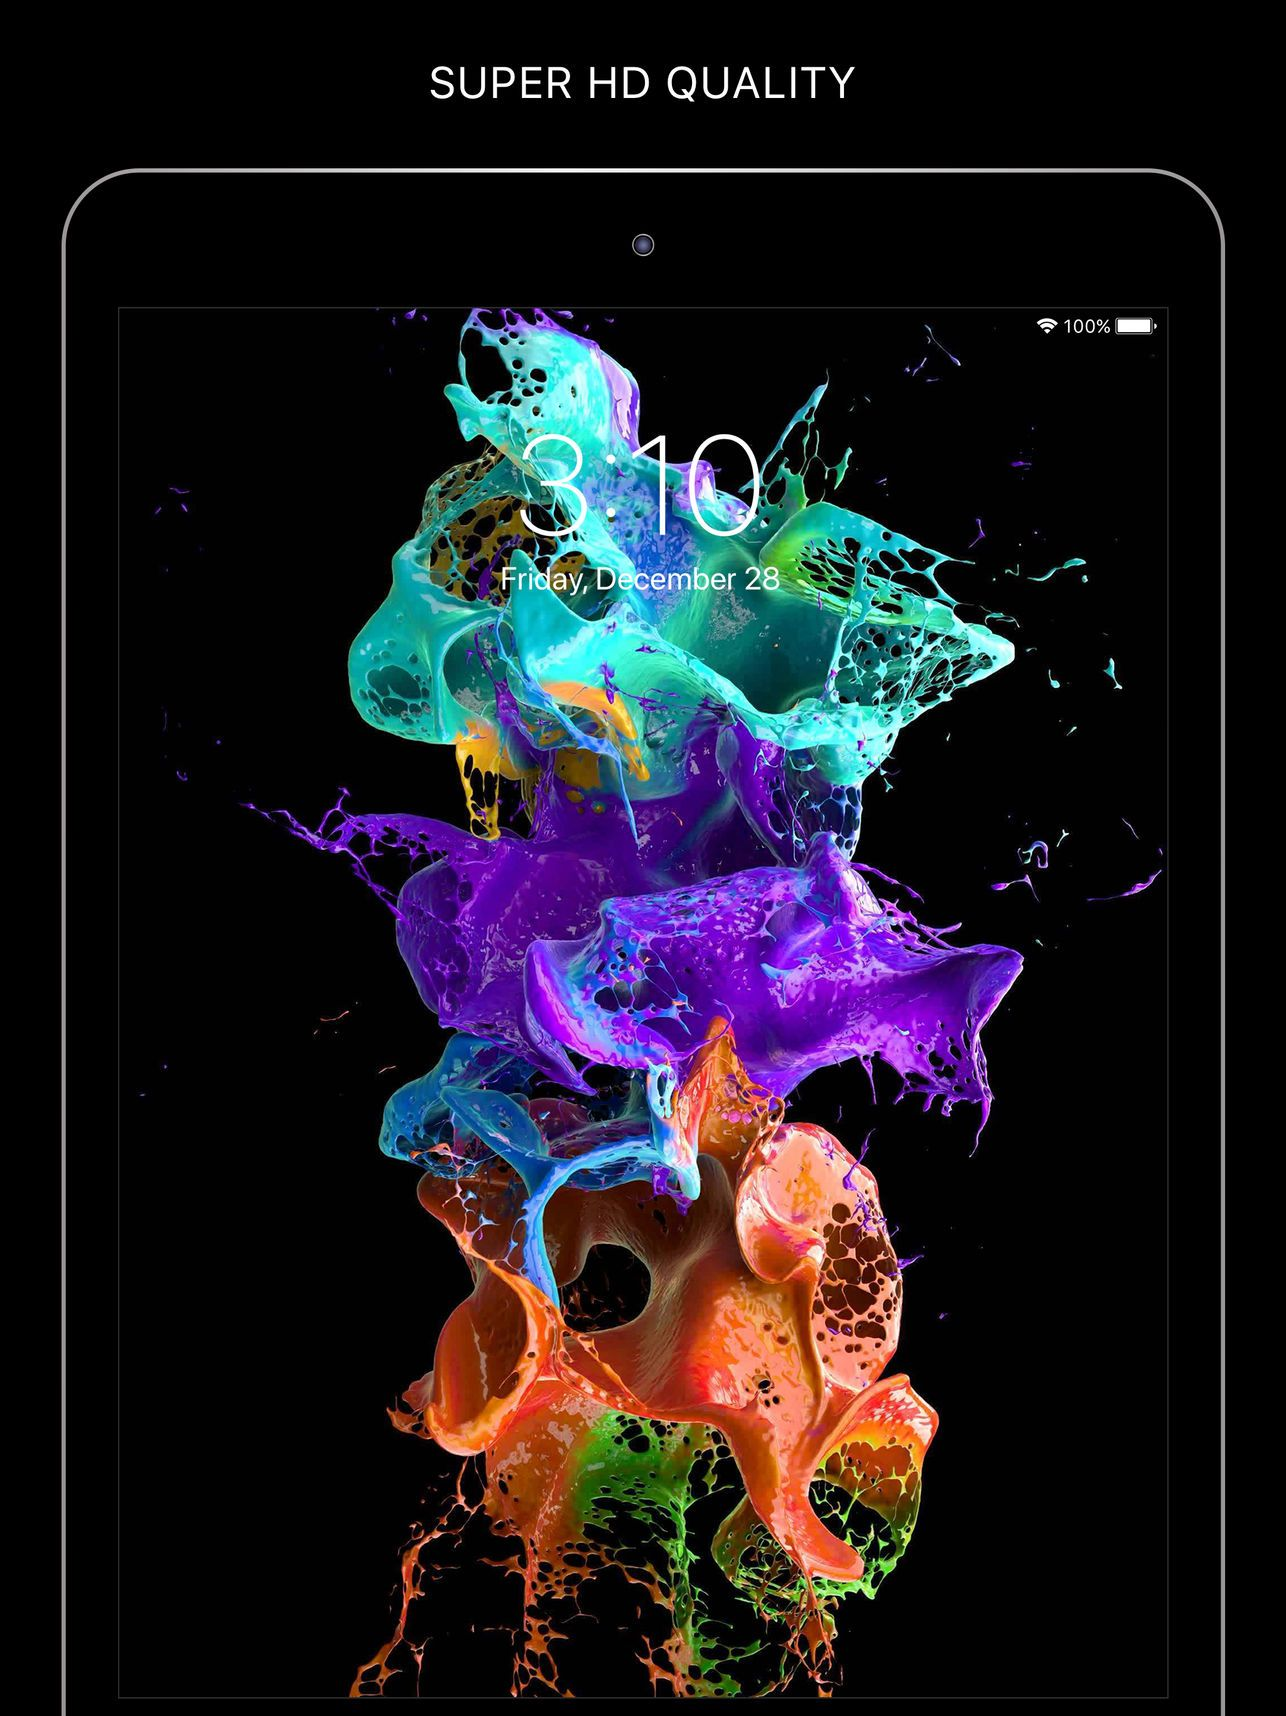 Everpix Cool Wallpapers Hd 4k On The App Store Iphone Wallpaper Video Live Wallpaper Iphone Iphone Background Wallpaper